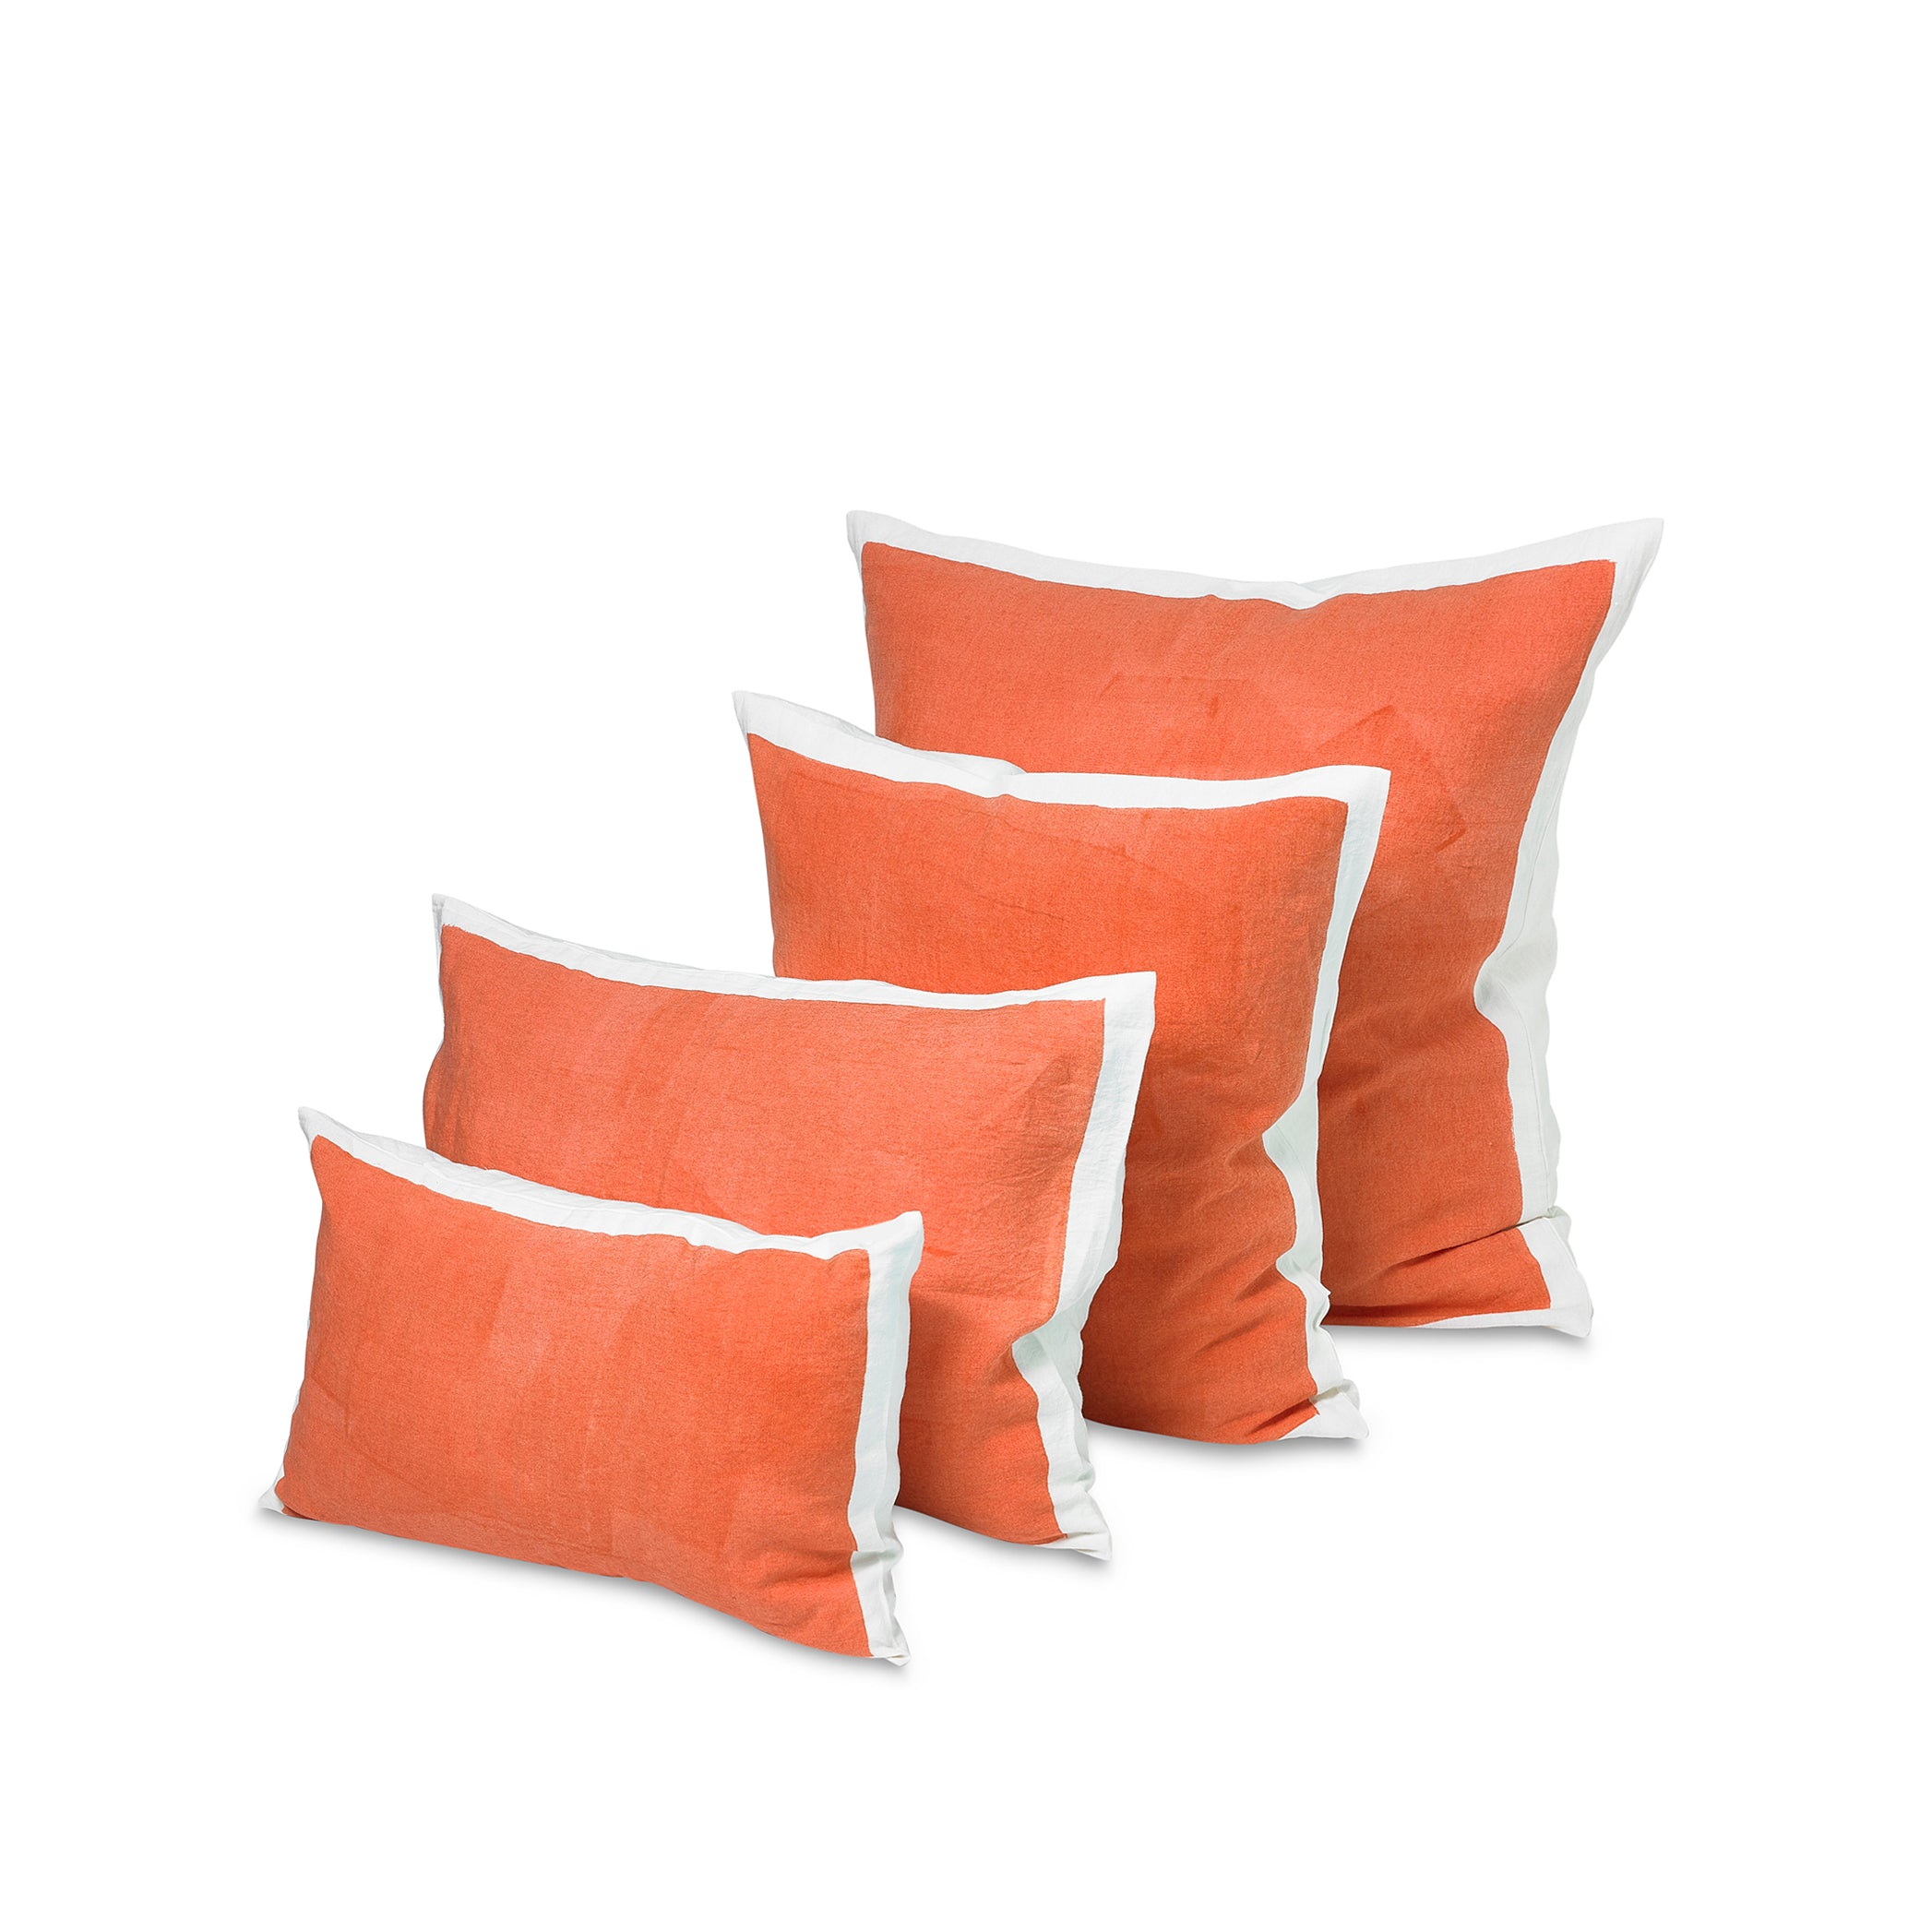 Hand Painted Linen Cushion Cover in Coral, 60cm x 40cm